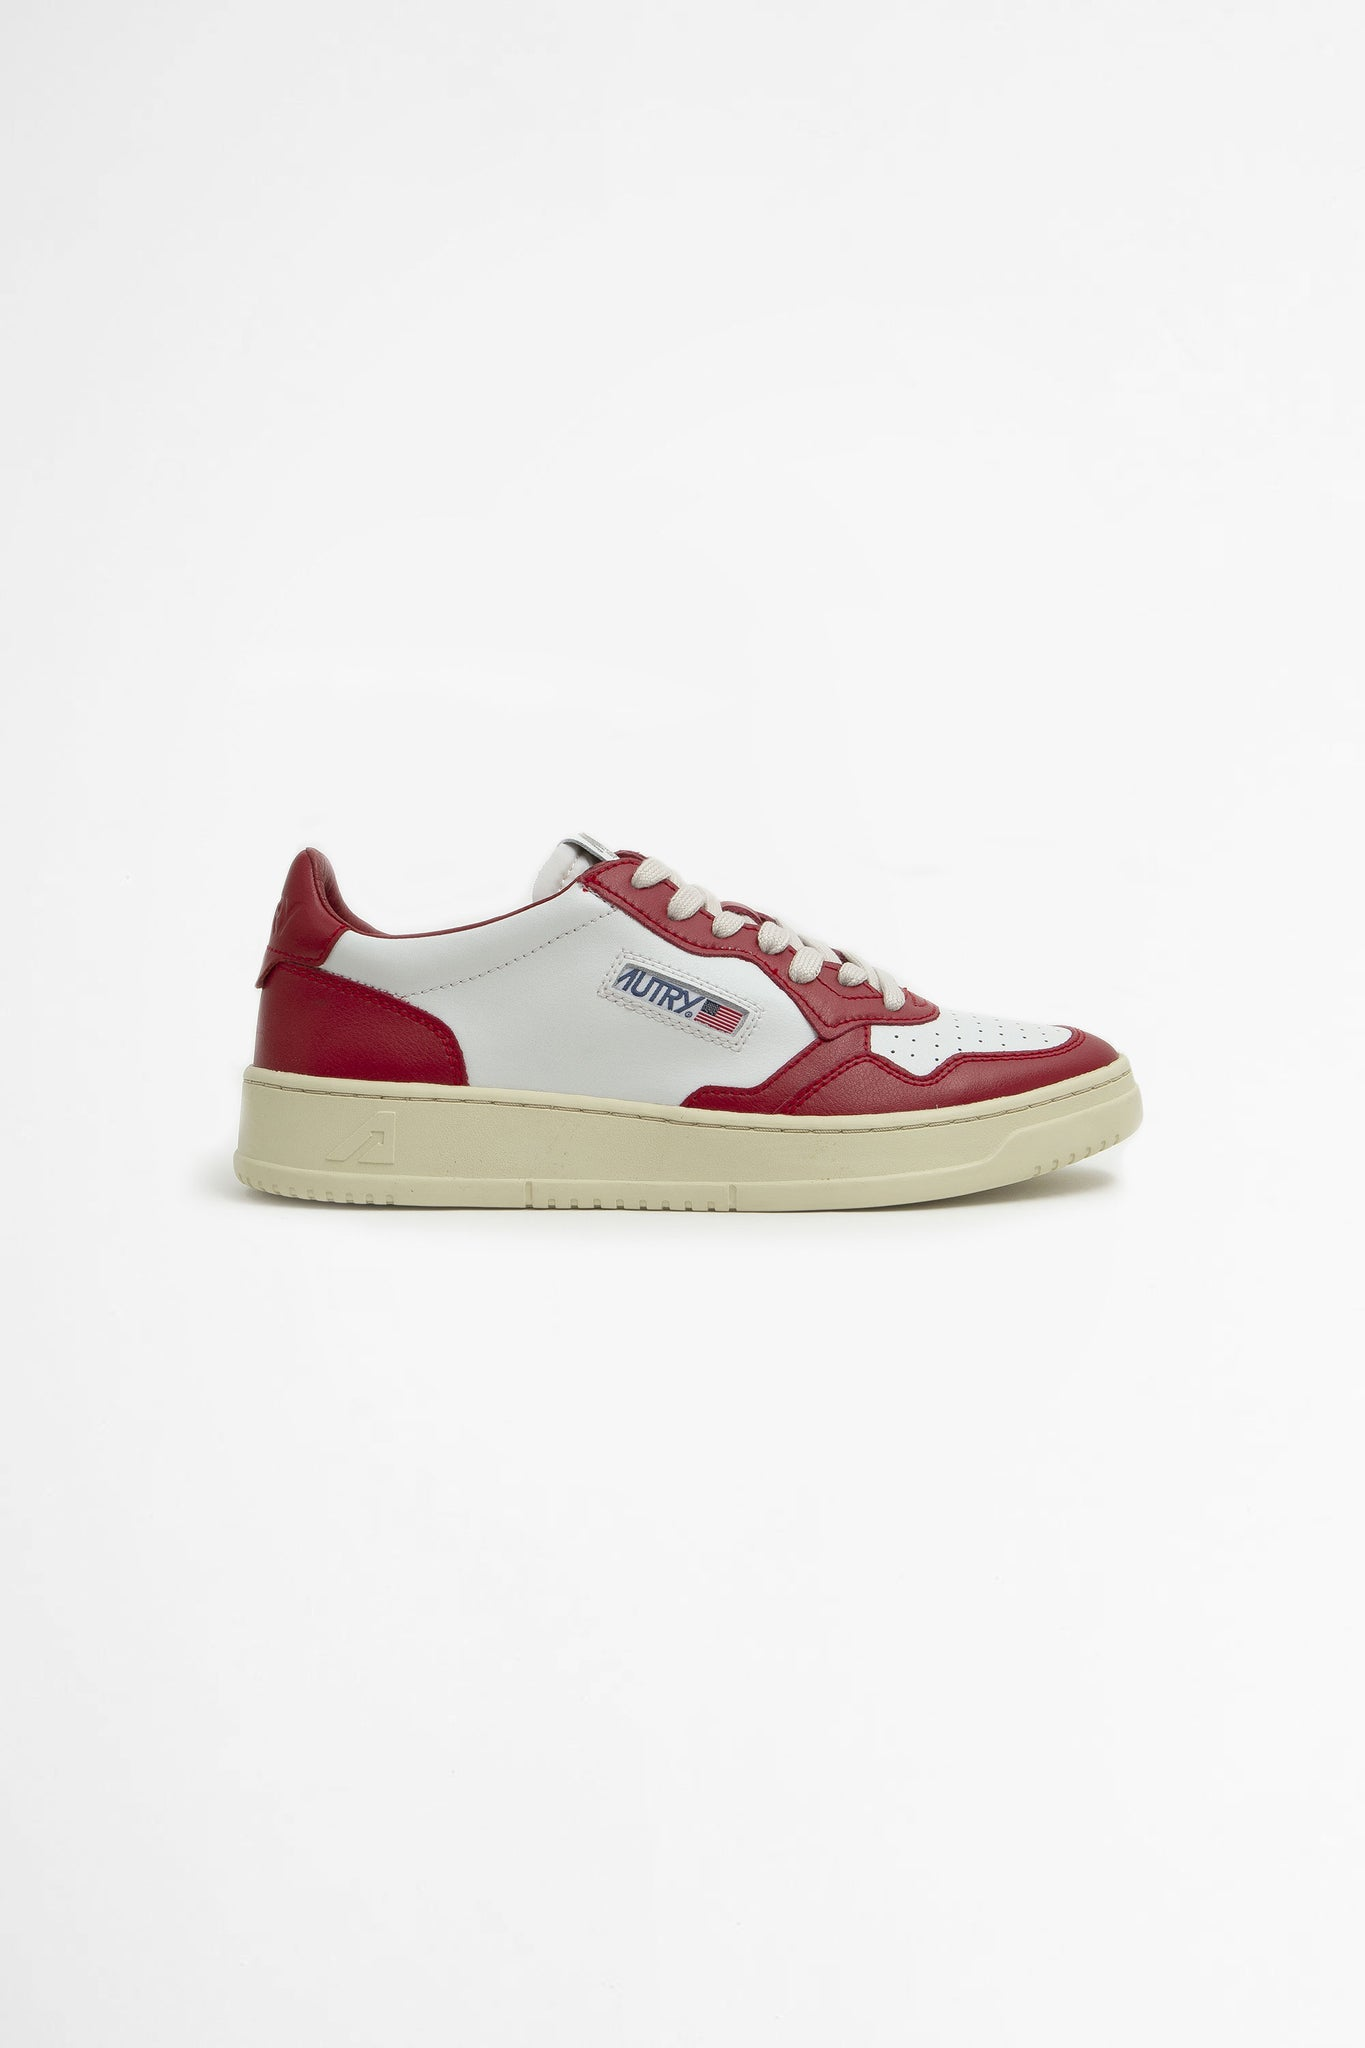 Autry low leat/ leat white/ red